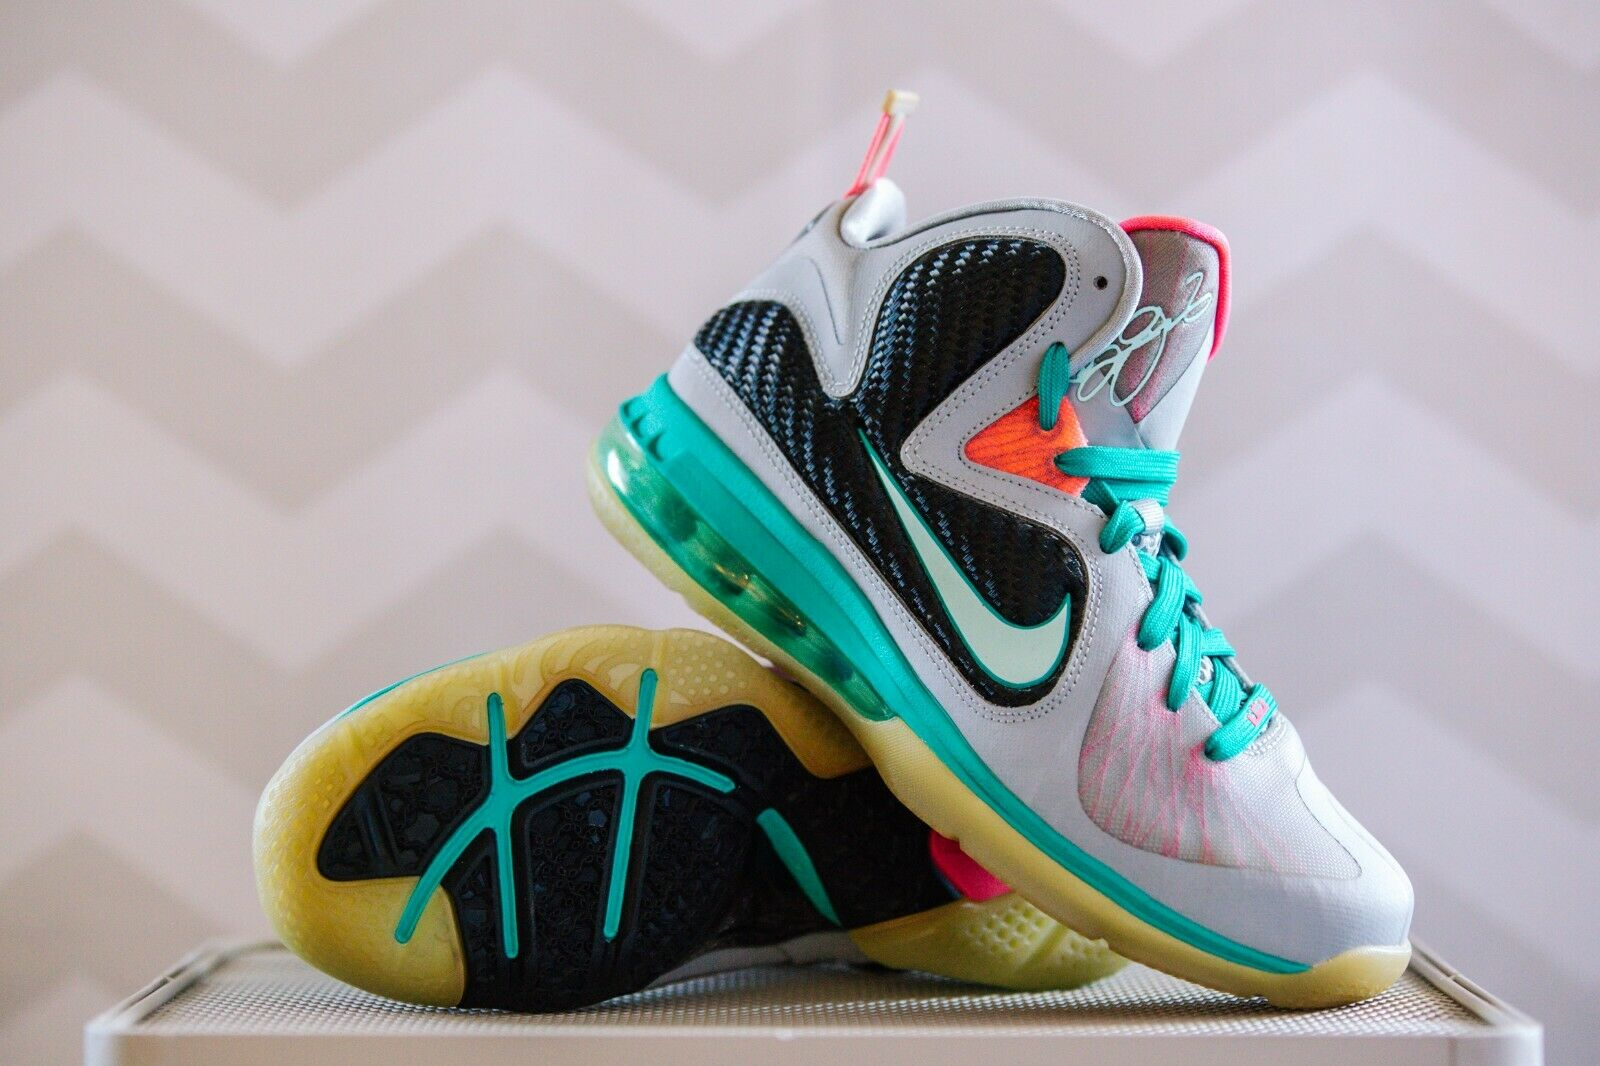 NEW (without box) Nike Lebron James 9 SOUTH BEACH - Size 6.5 Men's (NEVER WORN)